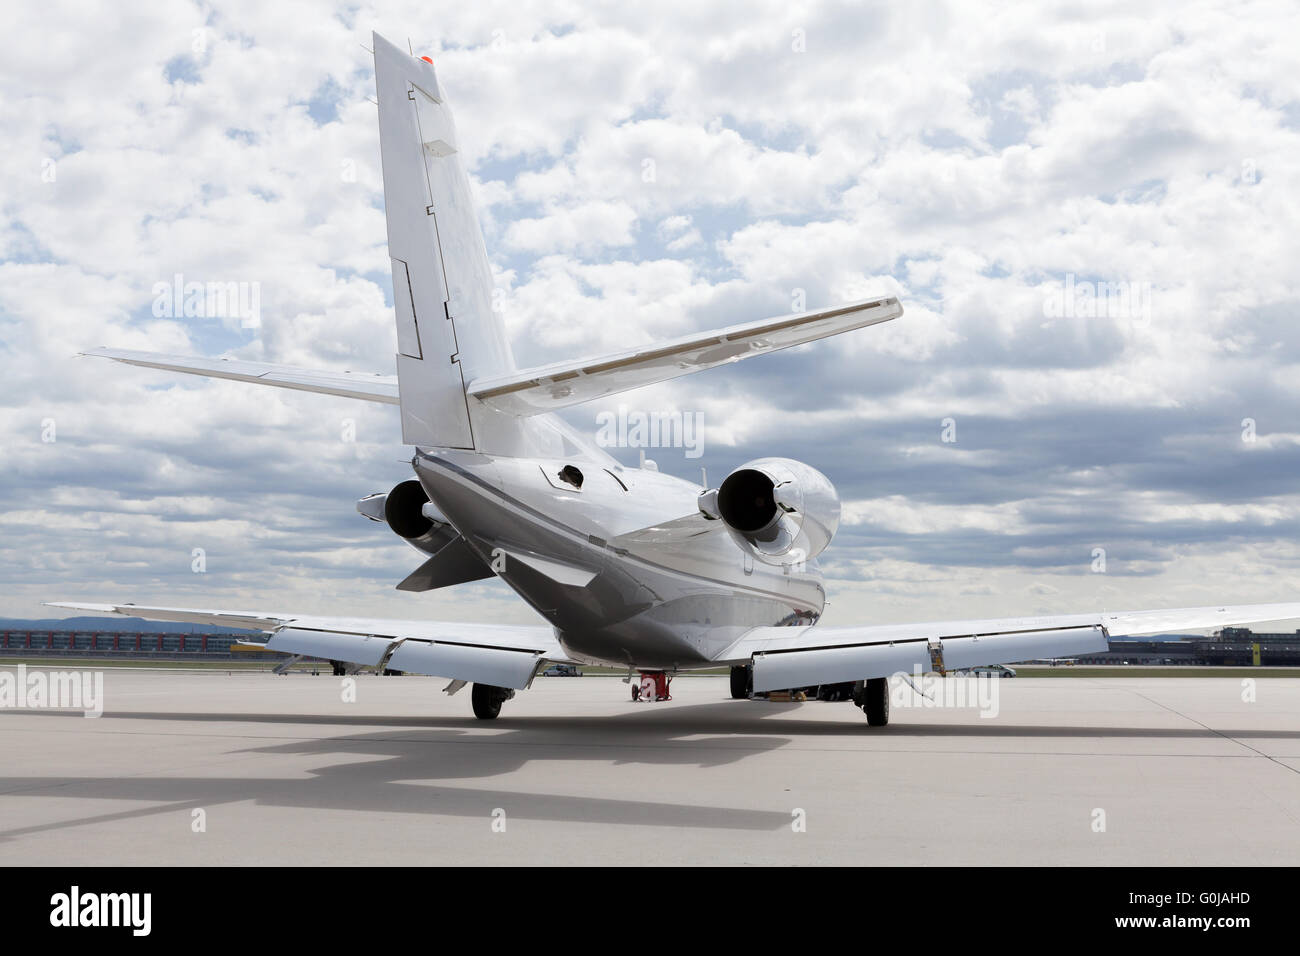 Aircraft Plane in front of the Airport with cloudy sky - Stock Image